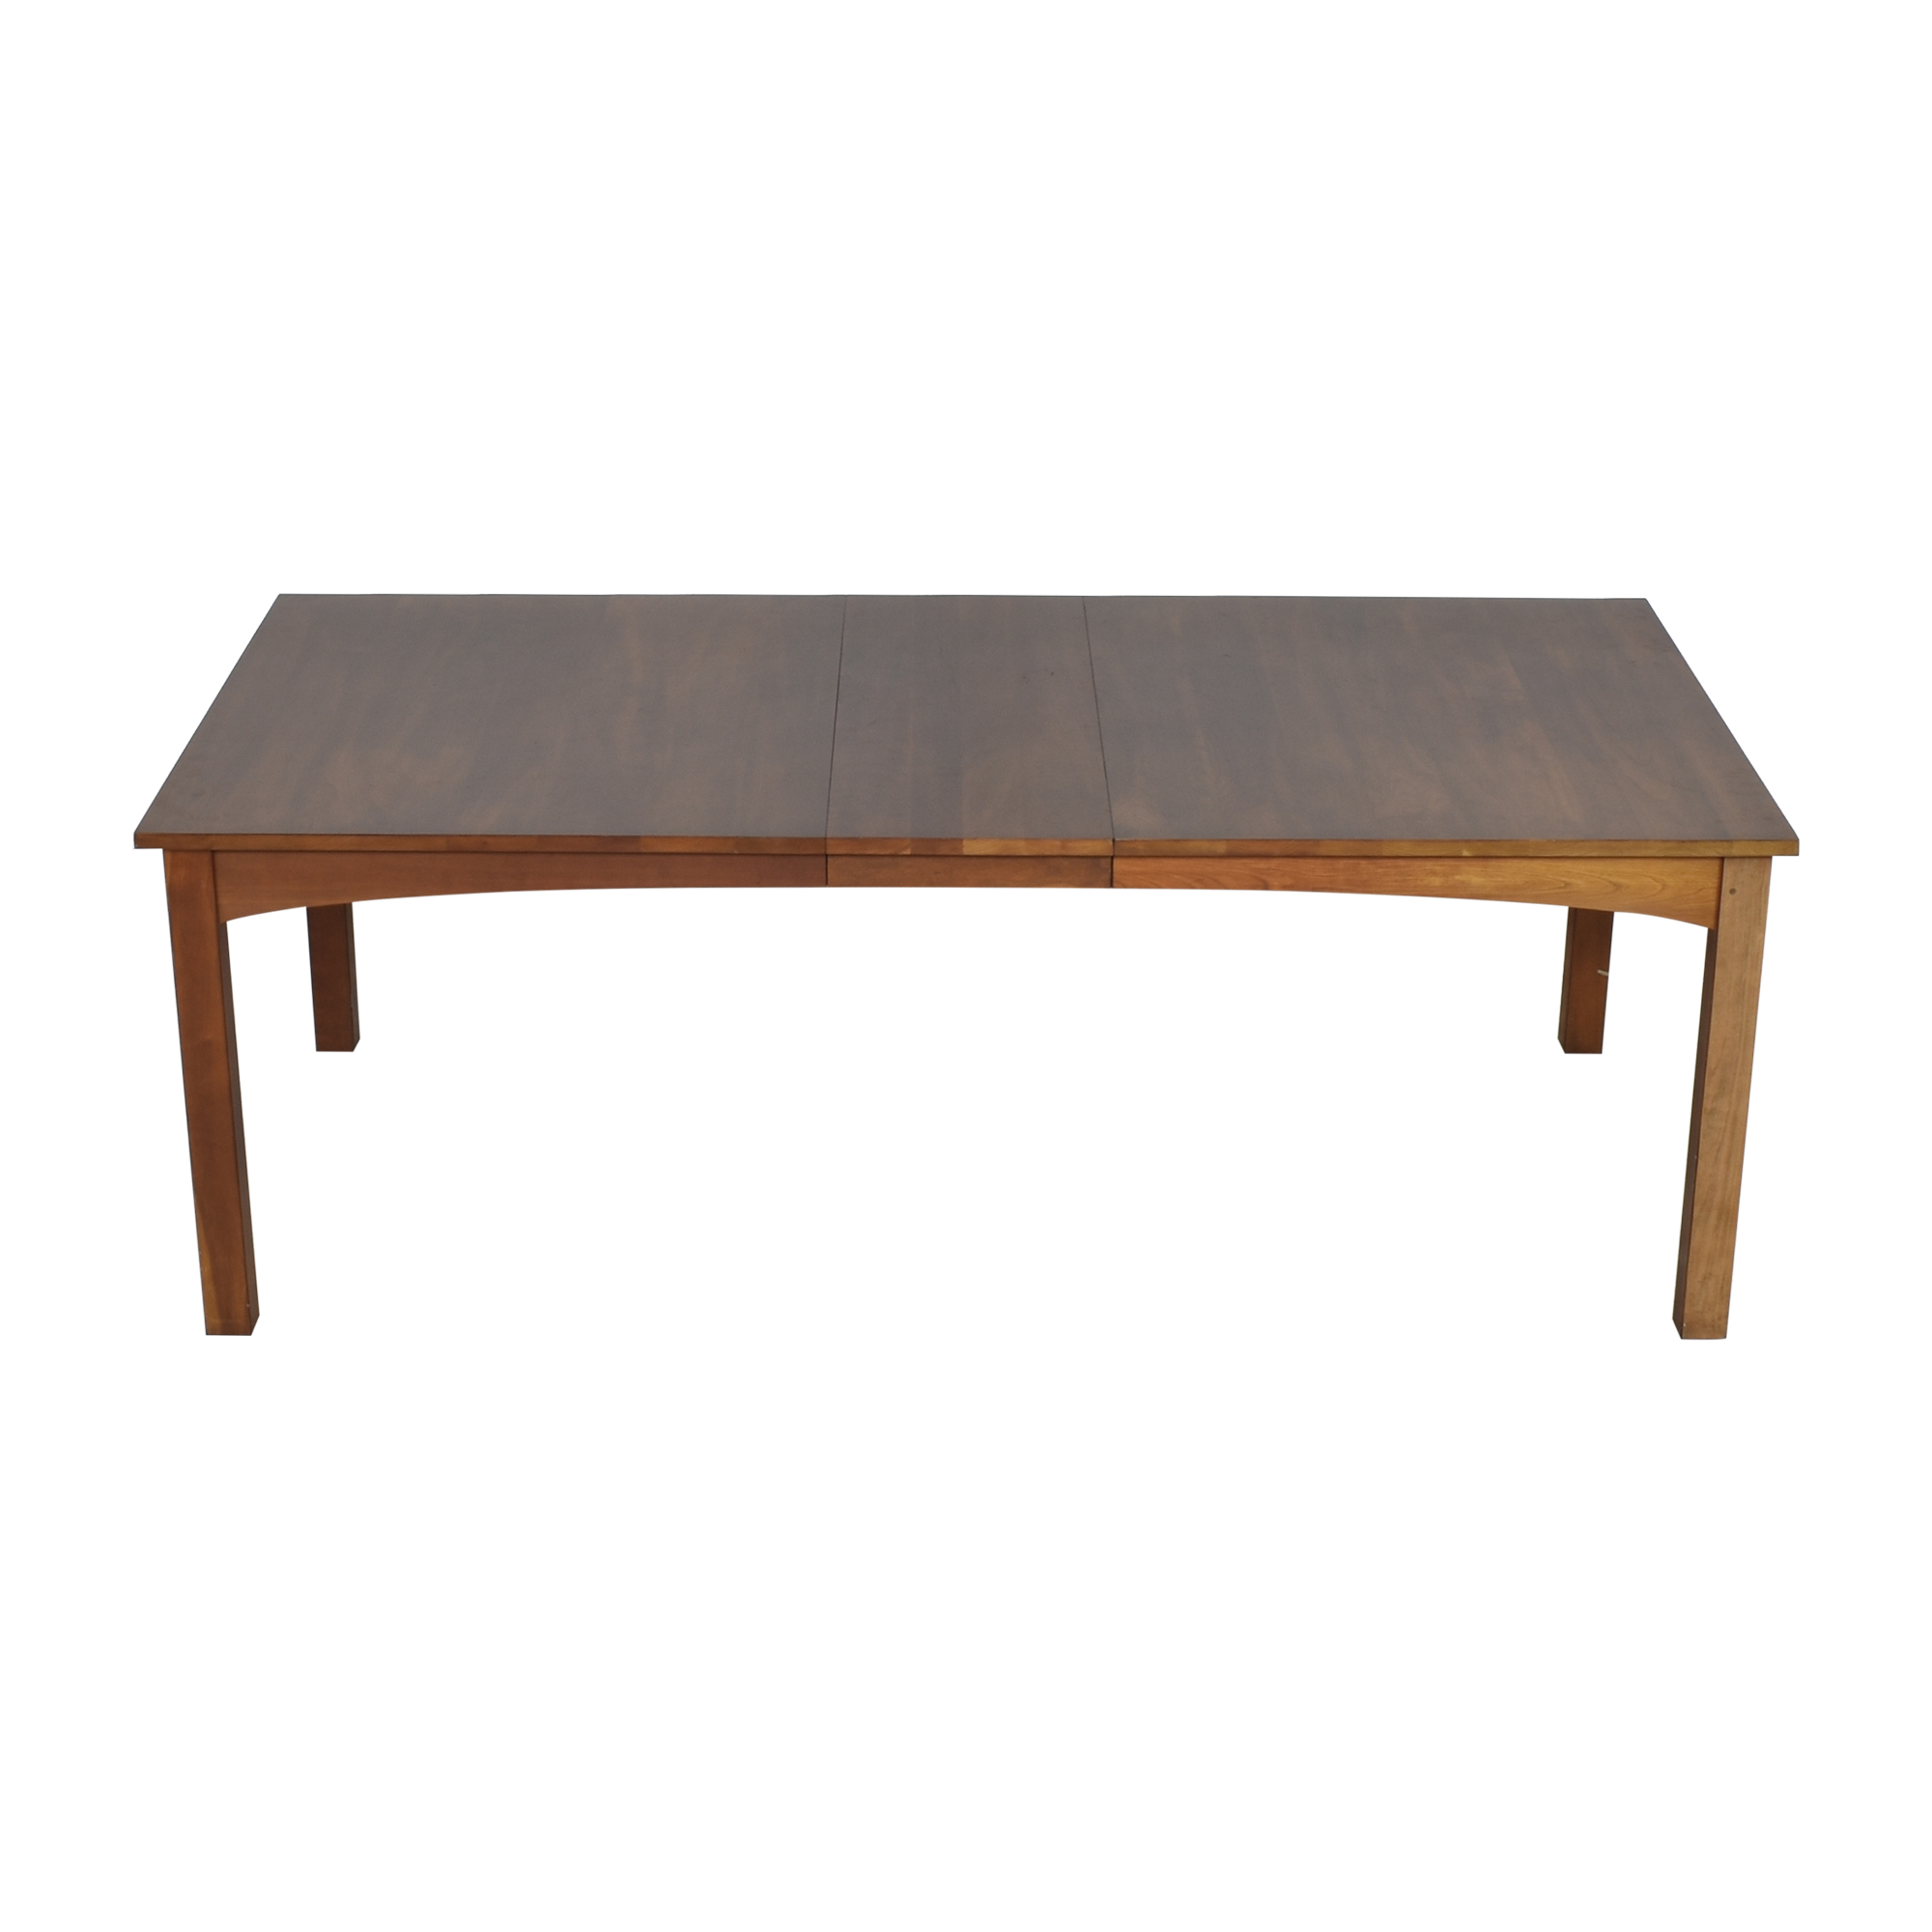 Stickley Furniture Stickley Mission Extendable Dining Table price